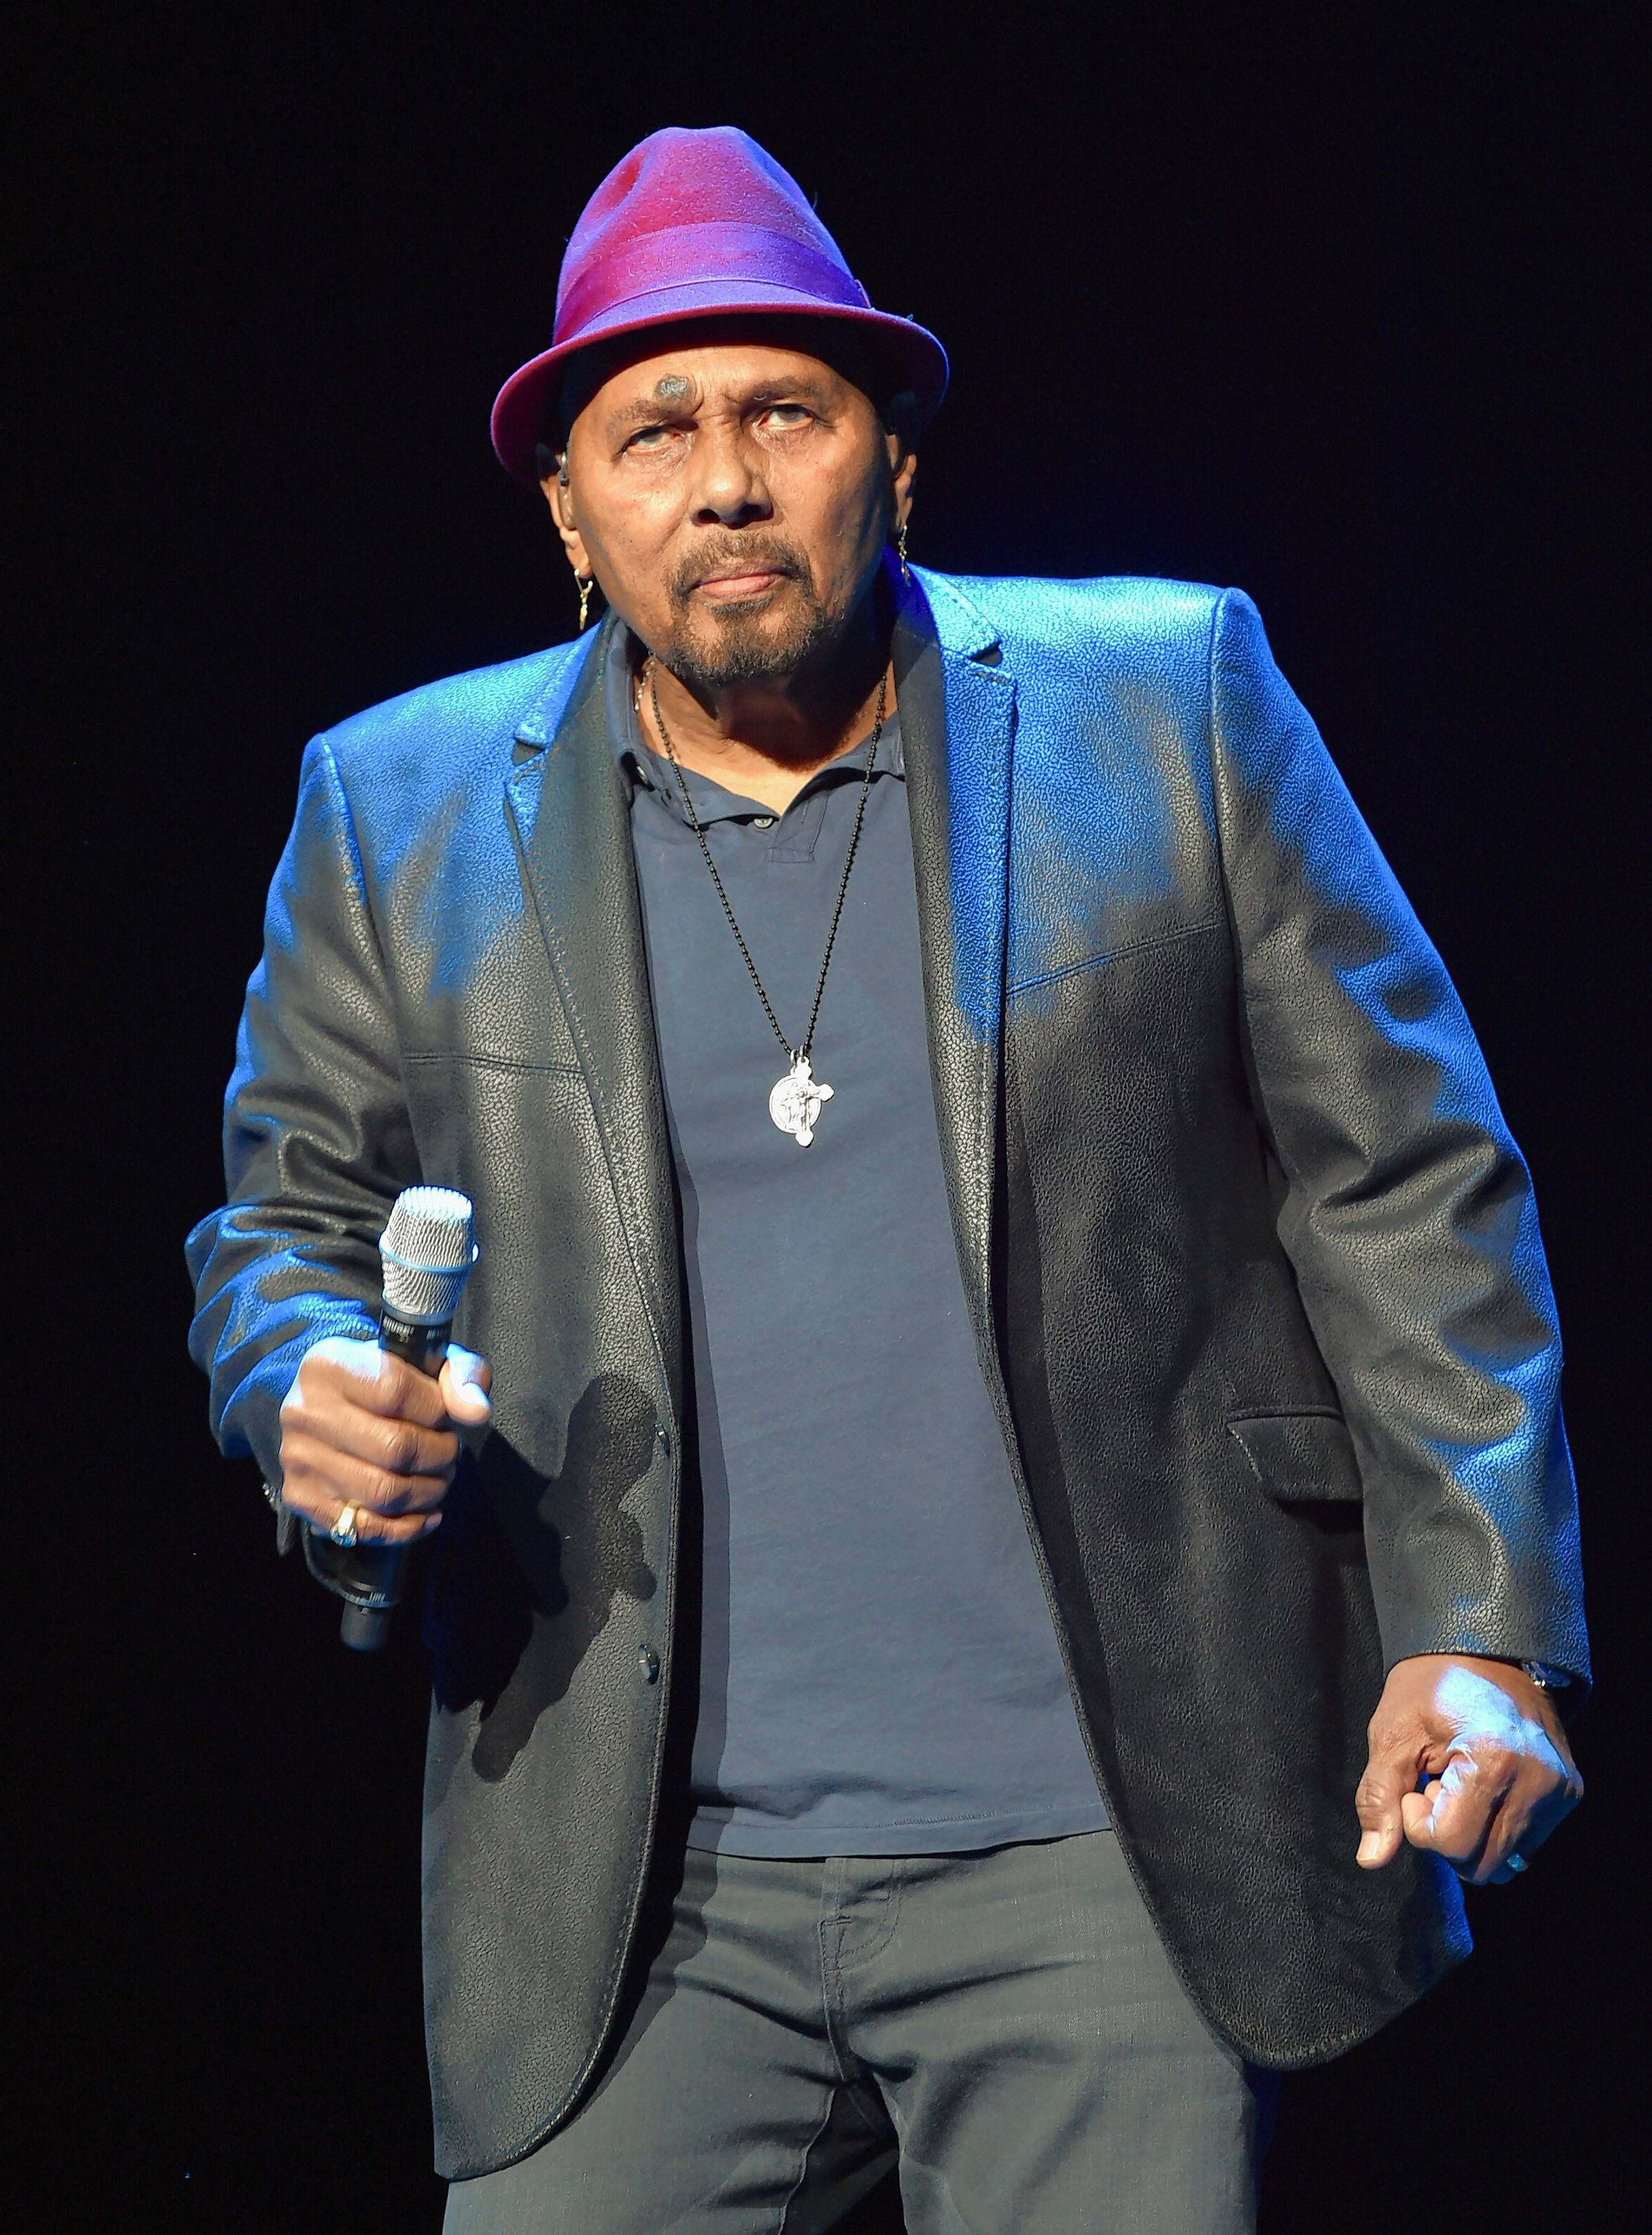 Aaron Neville performs at City Winery in Chicago at 8 p.m. Monday and Tuesday, March 4 and 5.